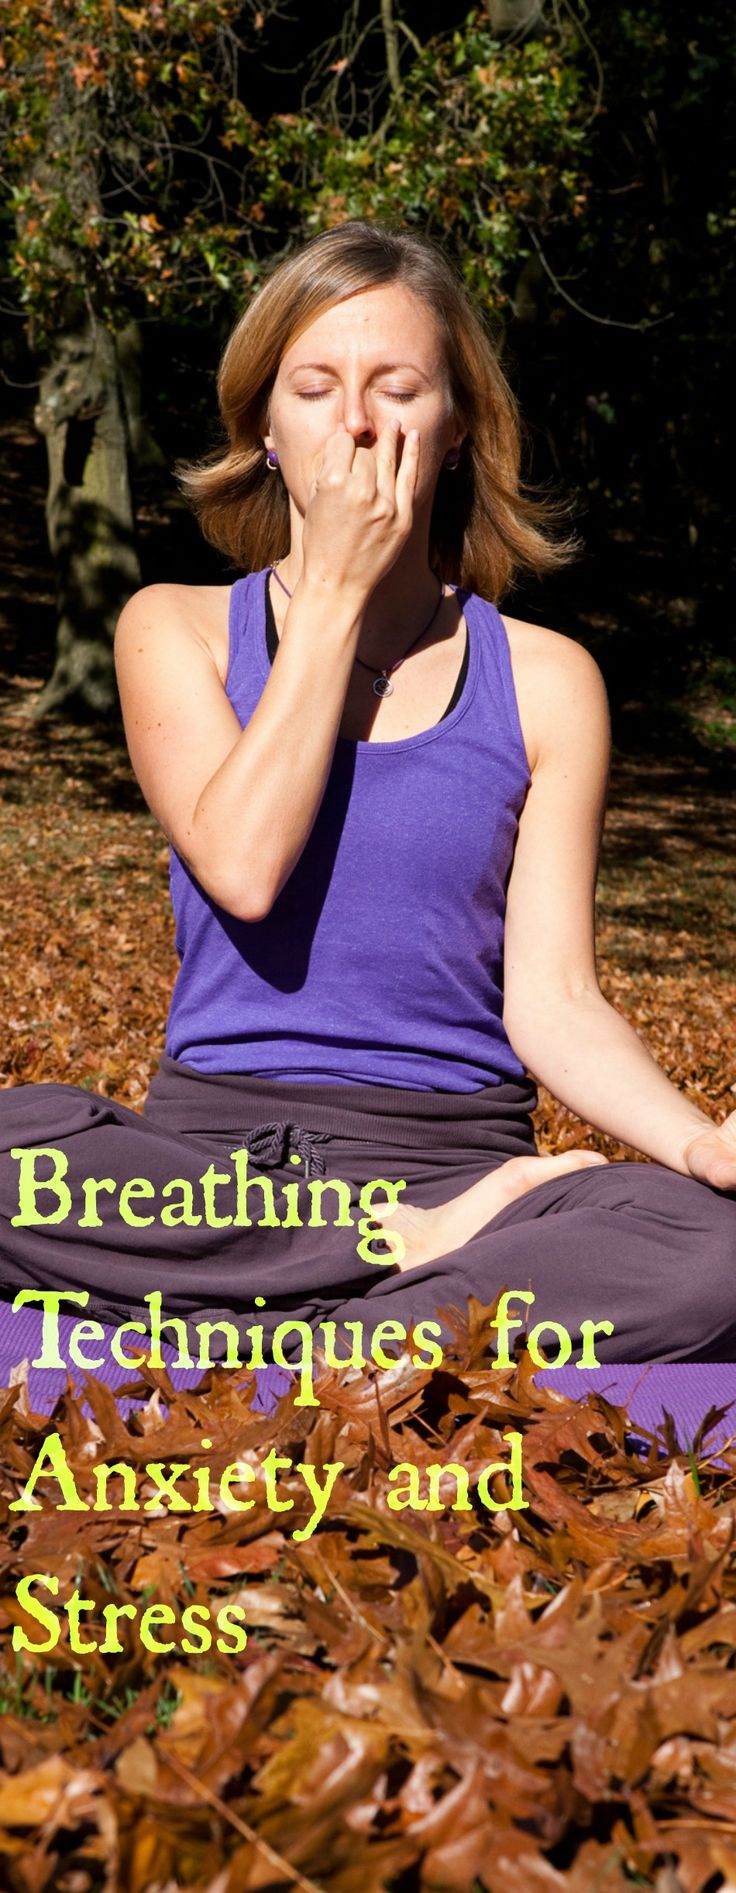 Breathing Techniques for Anxiety, Stress, and a Good Night's Sleep